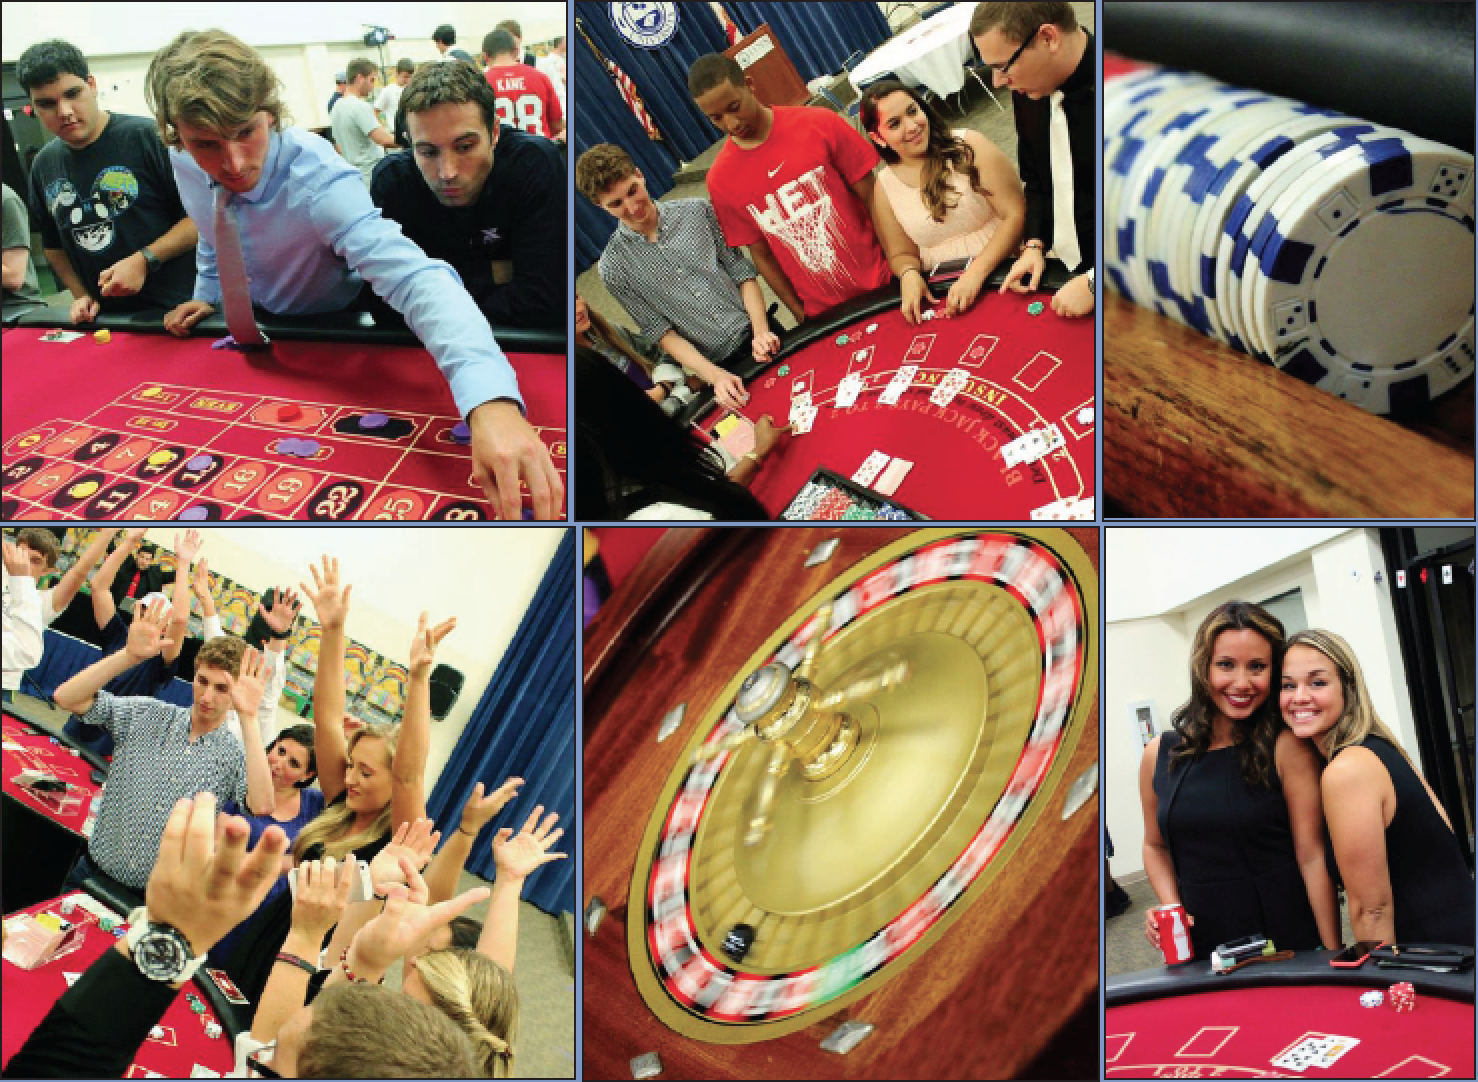 Above: The Casino Royale event was a hit last year and many students are excited to attend tonight's event. LU Photos/ J. Weissman.